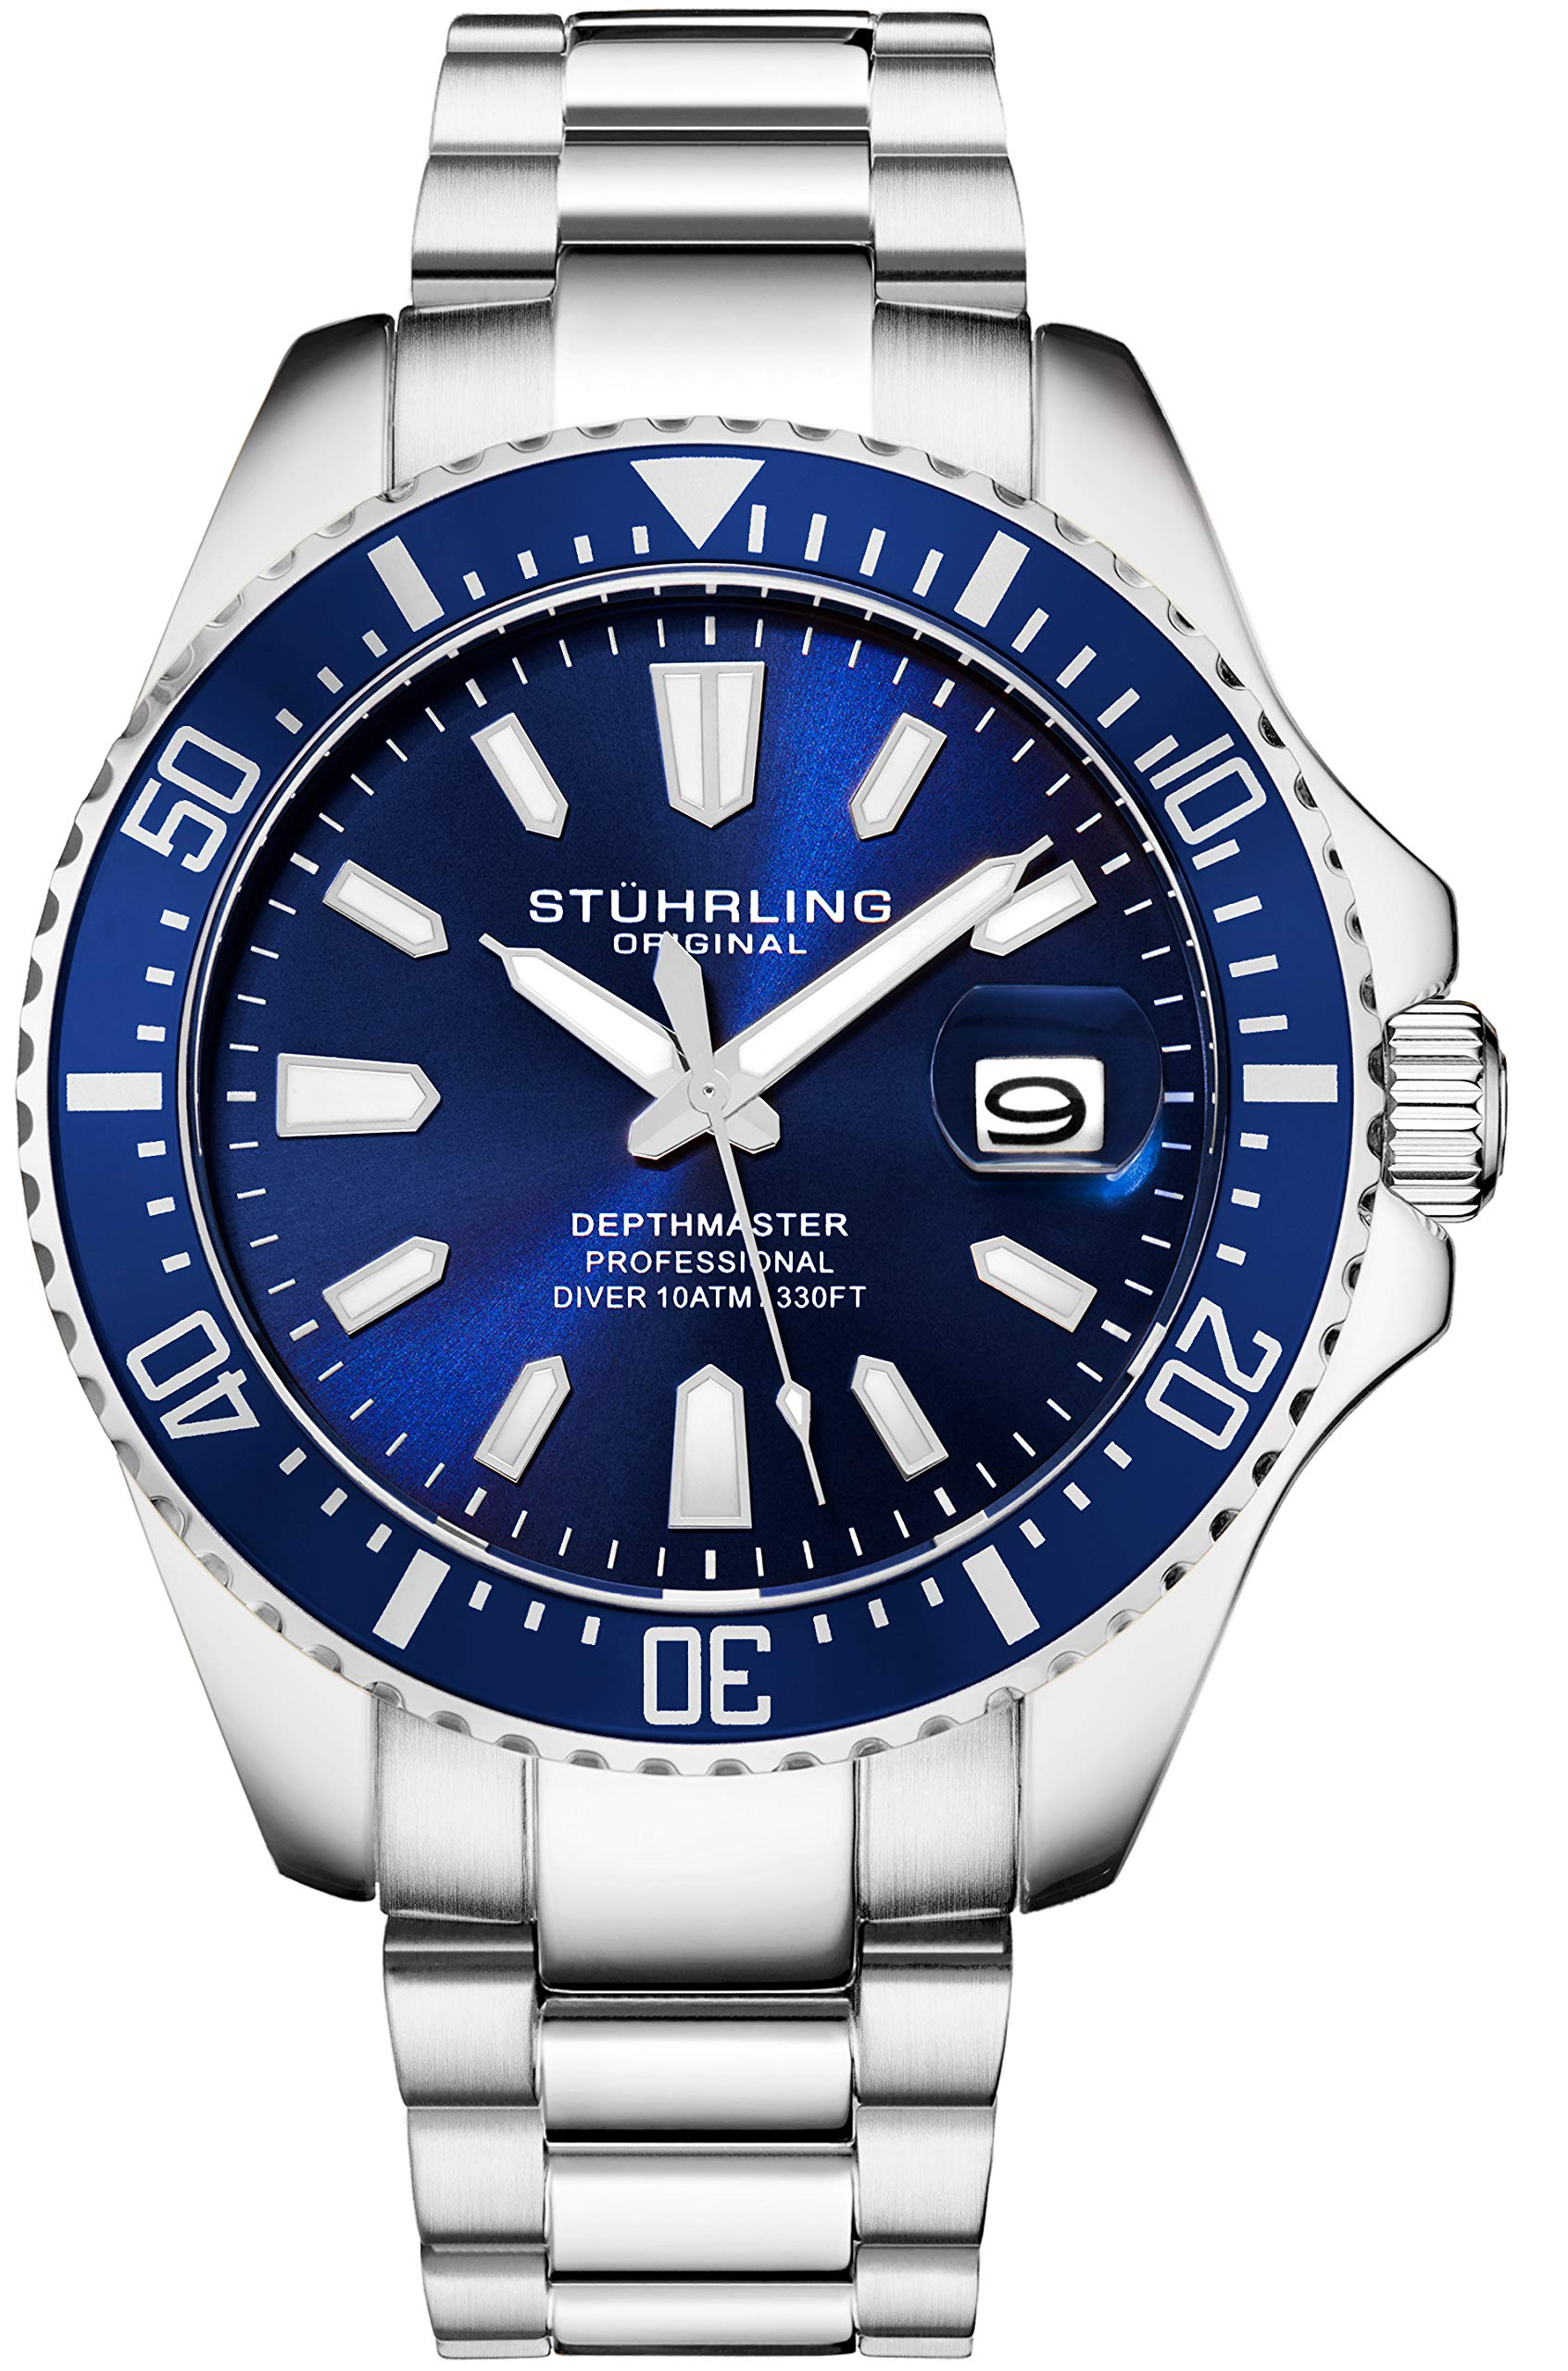 Stuhrling Original Blue Watches for Men - Pro Diver Watch - Sports Watch for Men with Screw Down Crown for 330 Ft. of Water Resistance - Analog Dial, Quartz Movement - Mens Watches Collection by Stuhrling Original